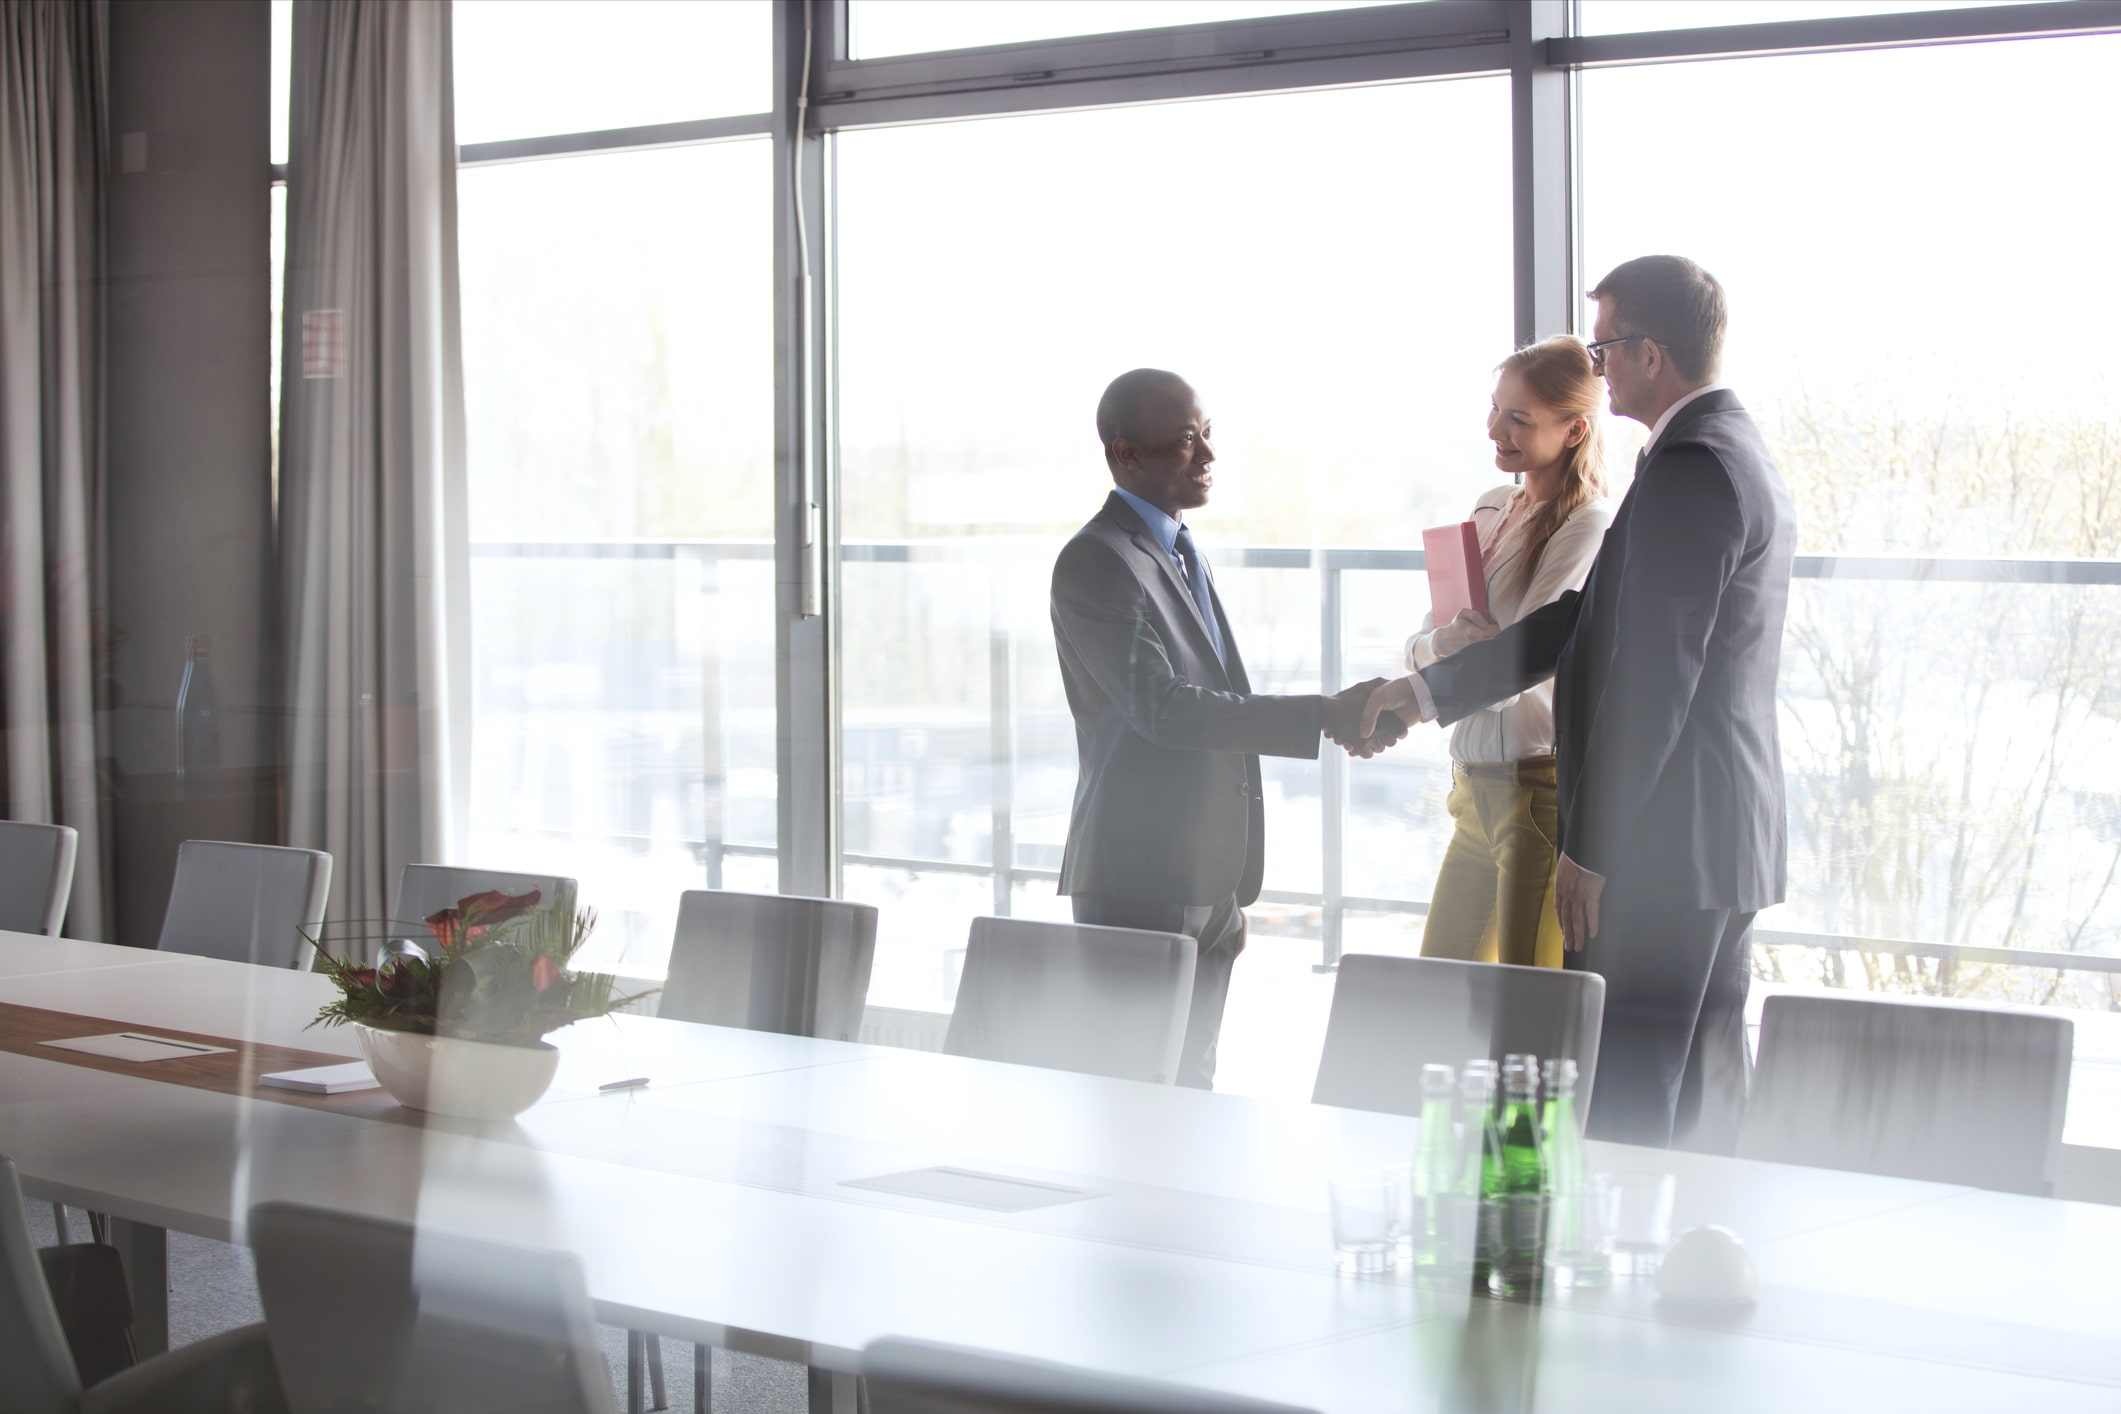 Common Meeting Room Rental Mistakes to Avoid